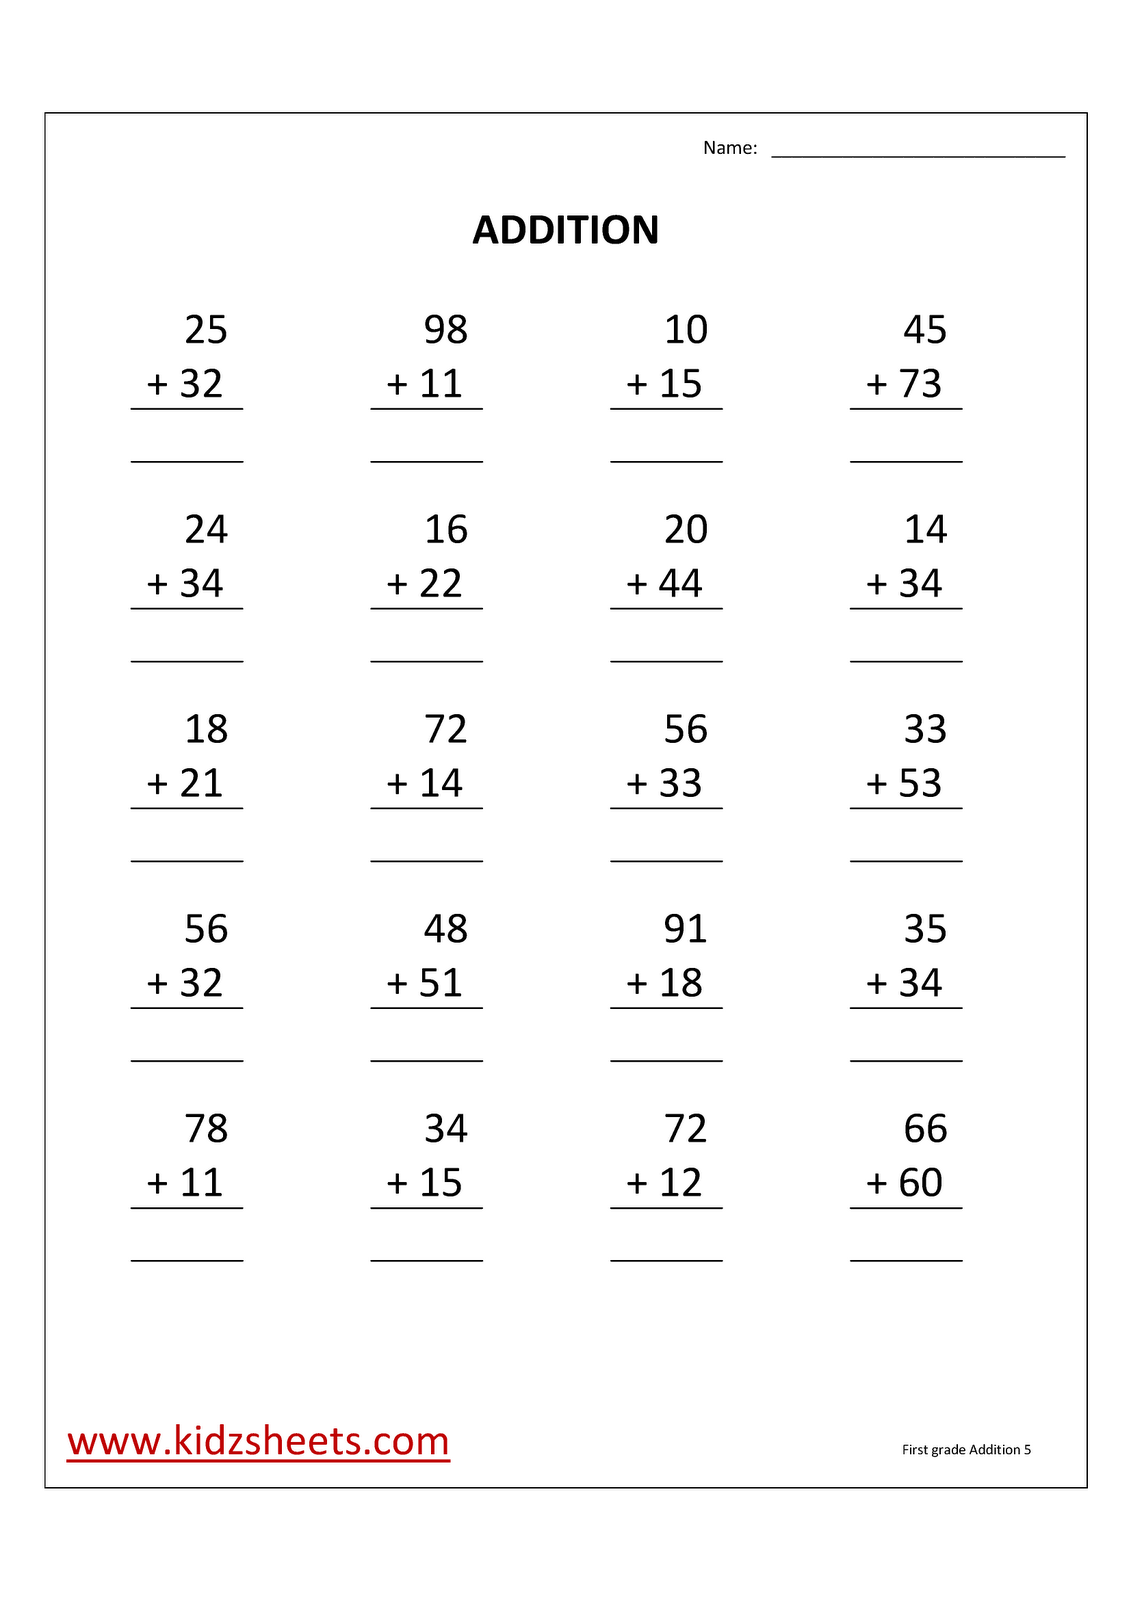 Addition Worksheets Grade 5 Scalien – Addition Worksheets Grade 5